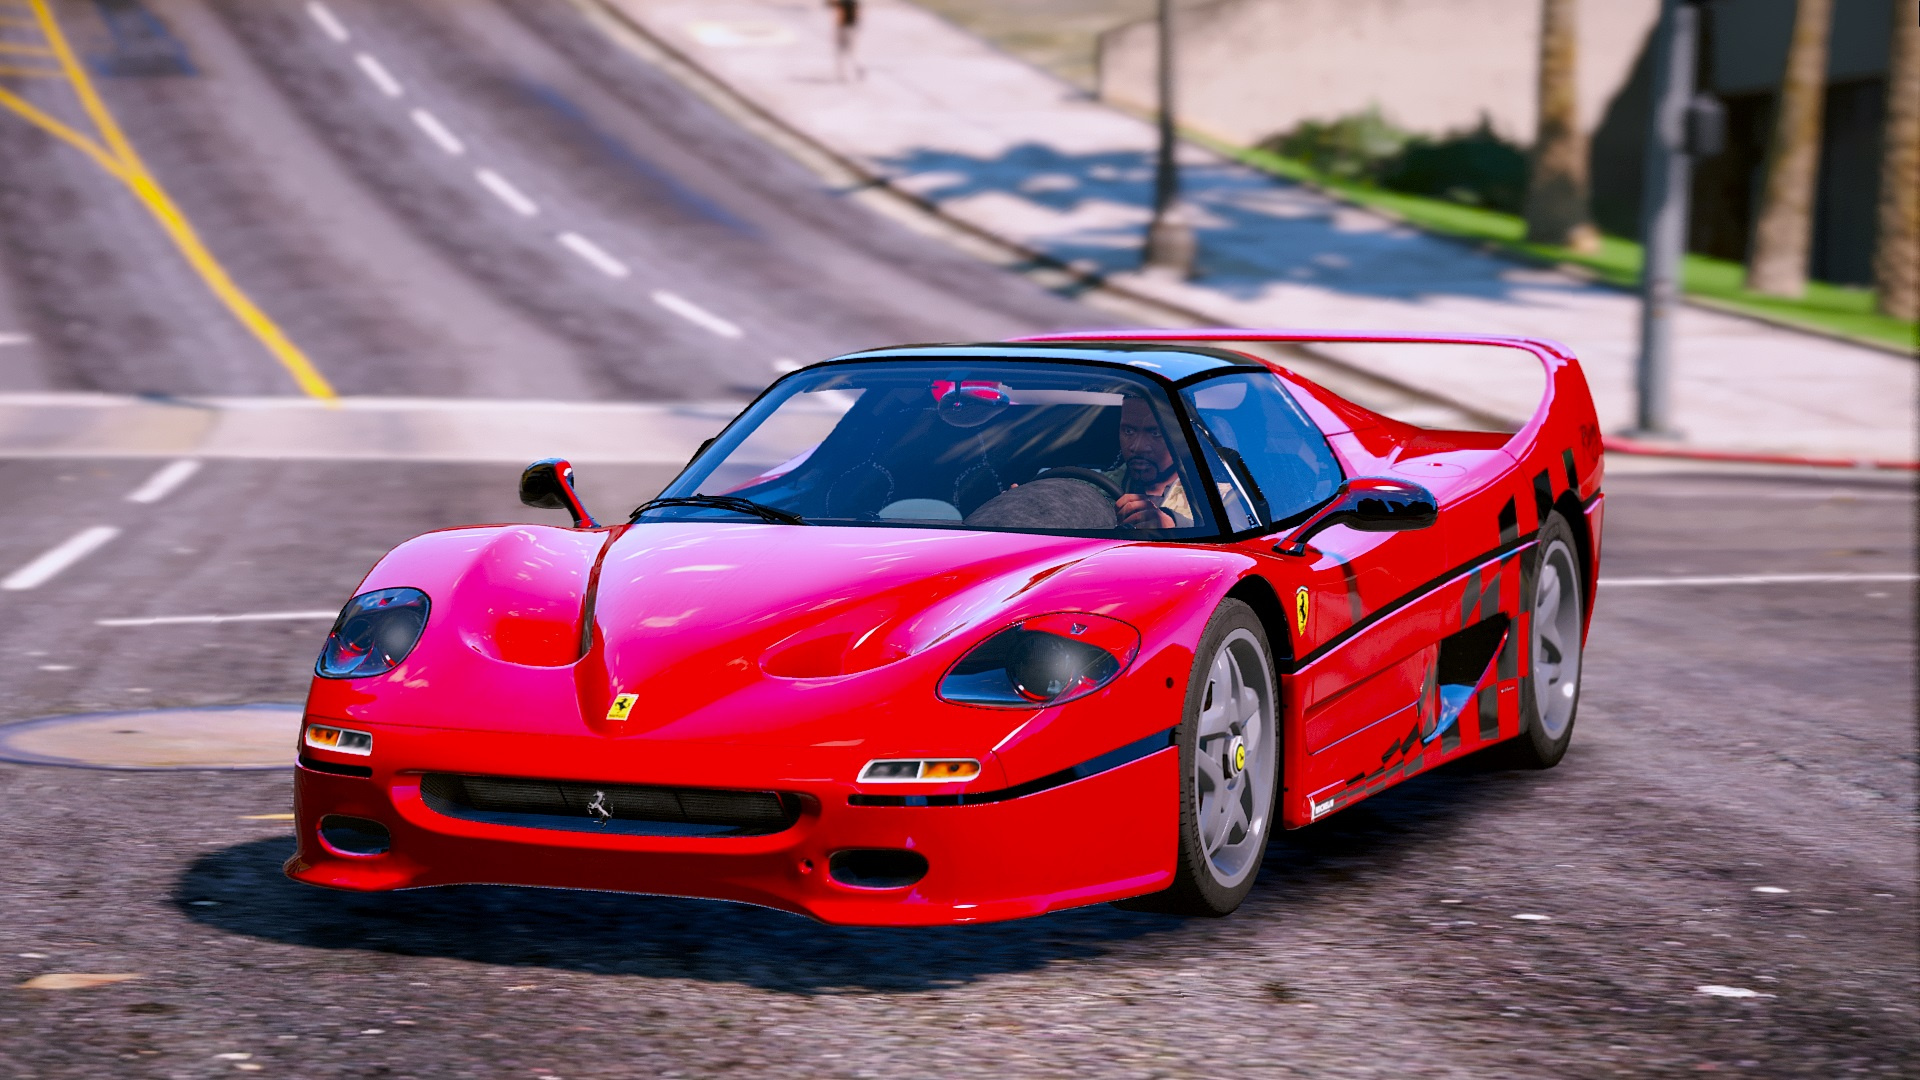 1995 Ferrari F50 [Add-On] - GTA5-Mods.com